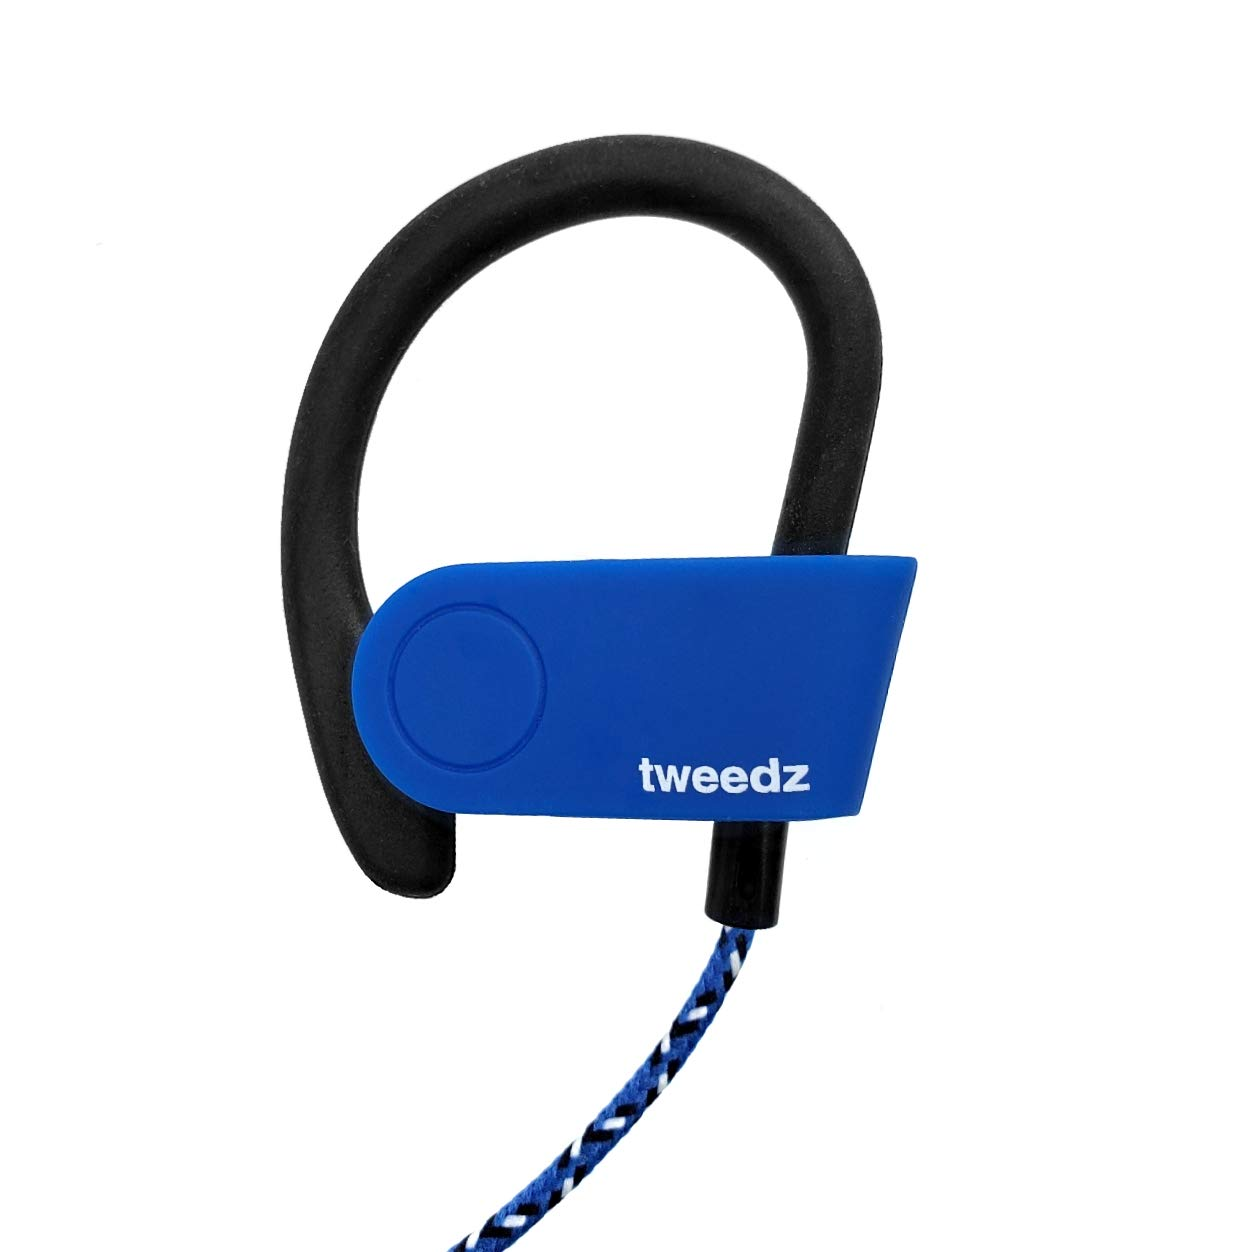 Tweedz Sport Bluetooth Wireless Earbuds with Microphone – Durable Earphones with Runners Earhook and Nylon Wrapped Lanyard Blue